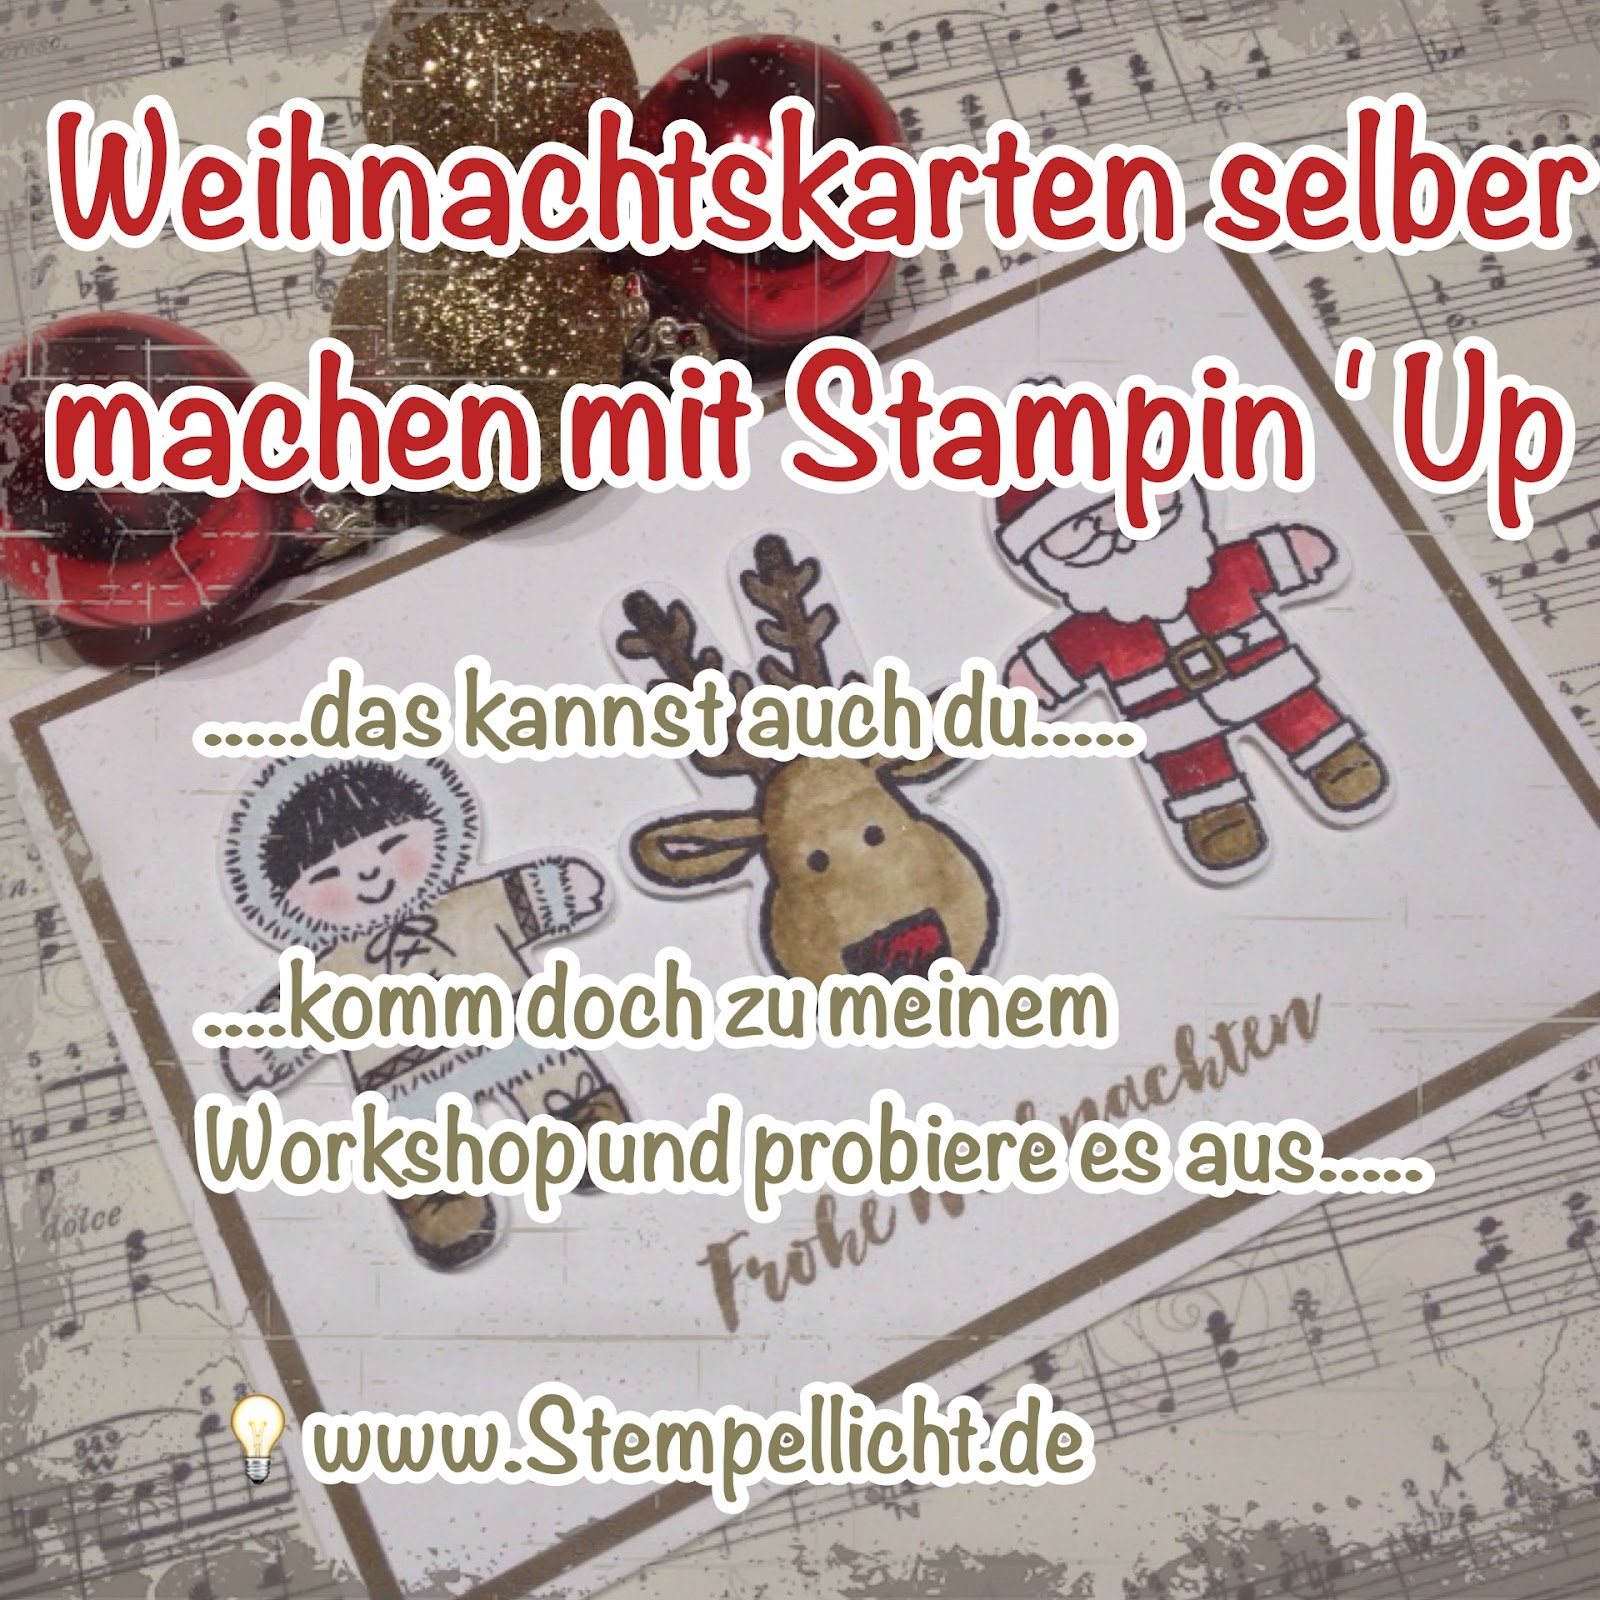 stempellicht weihnachtskarten selbst gemacht mit stampin 39 up workshoptermine. Black Bedroom Furniture Sets. Home Design Ideas